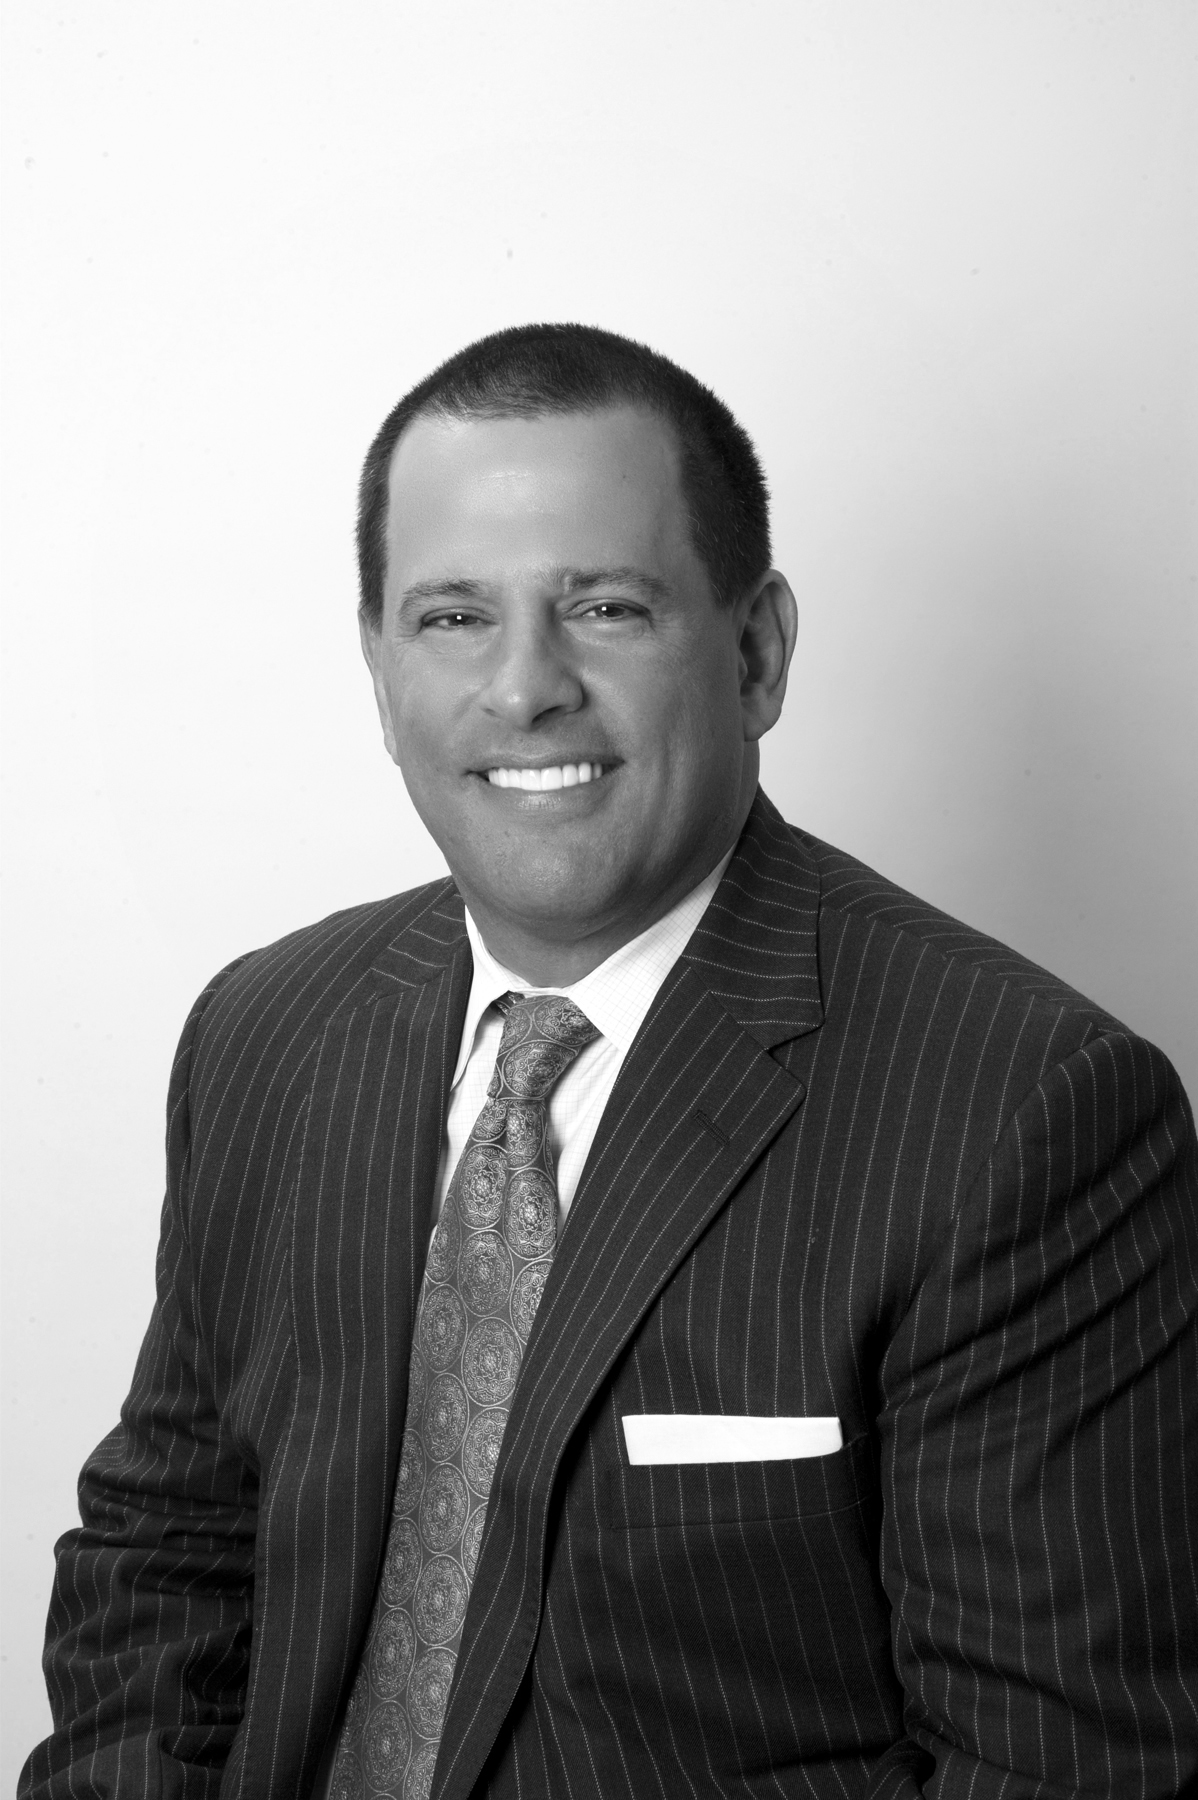 Christopher McMahon, financial advisor Monroeville PA